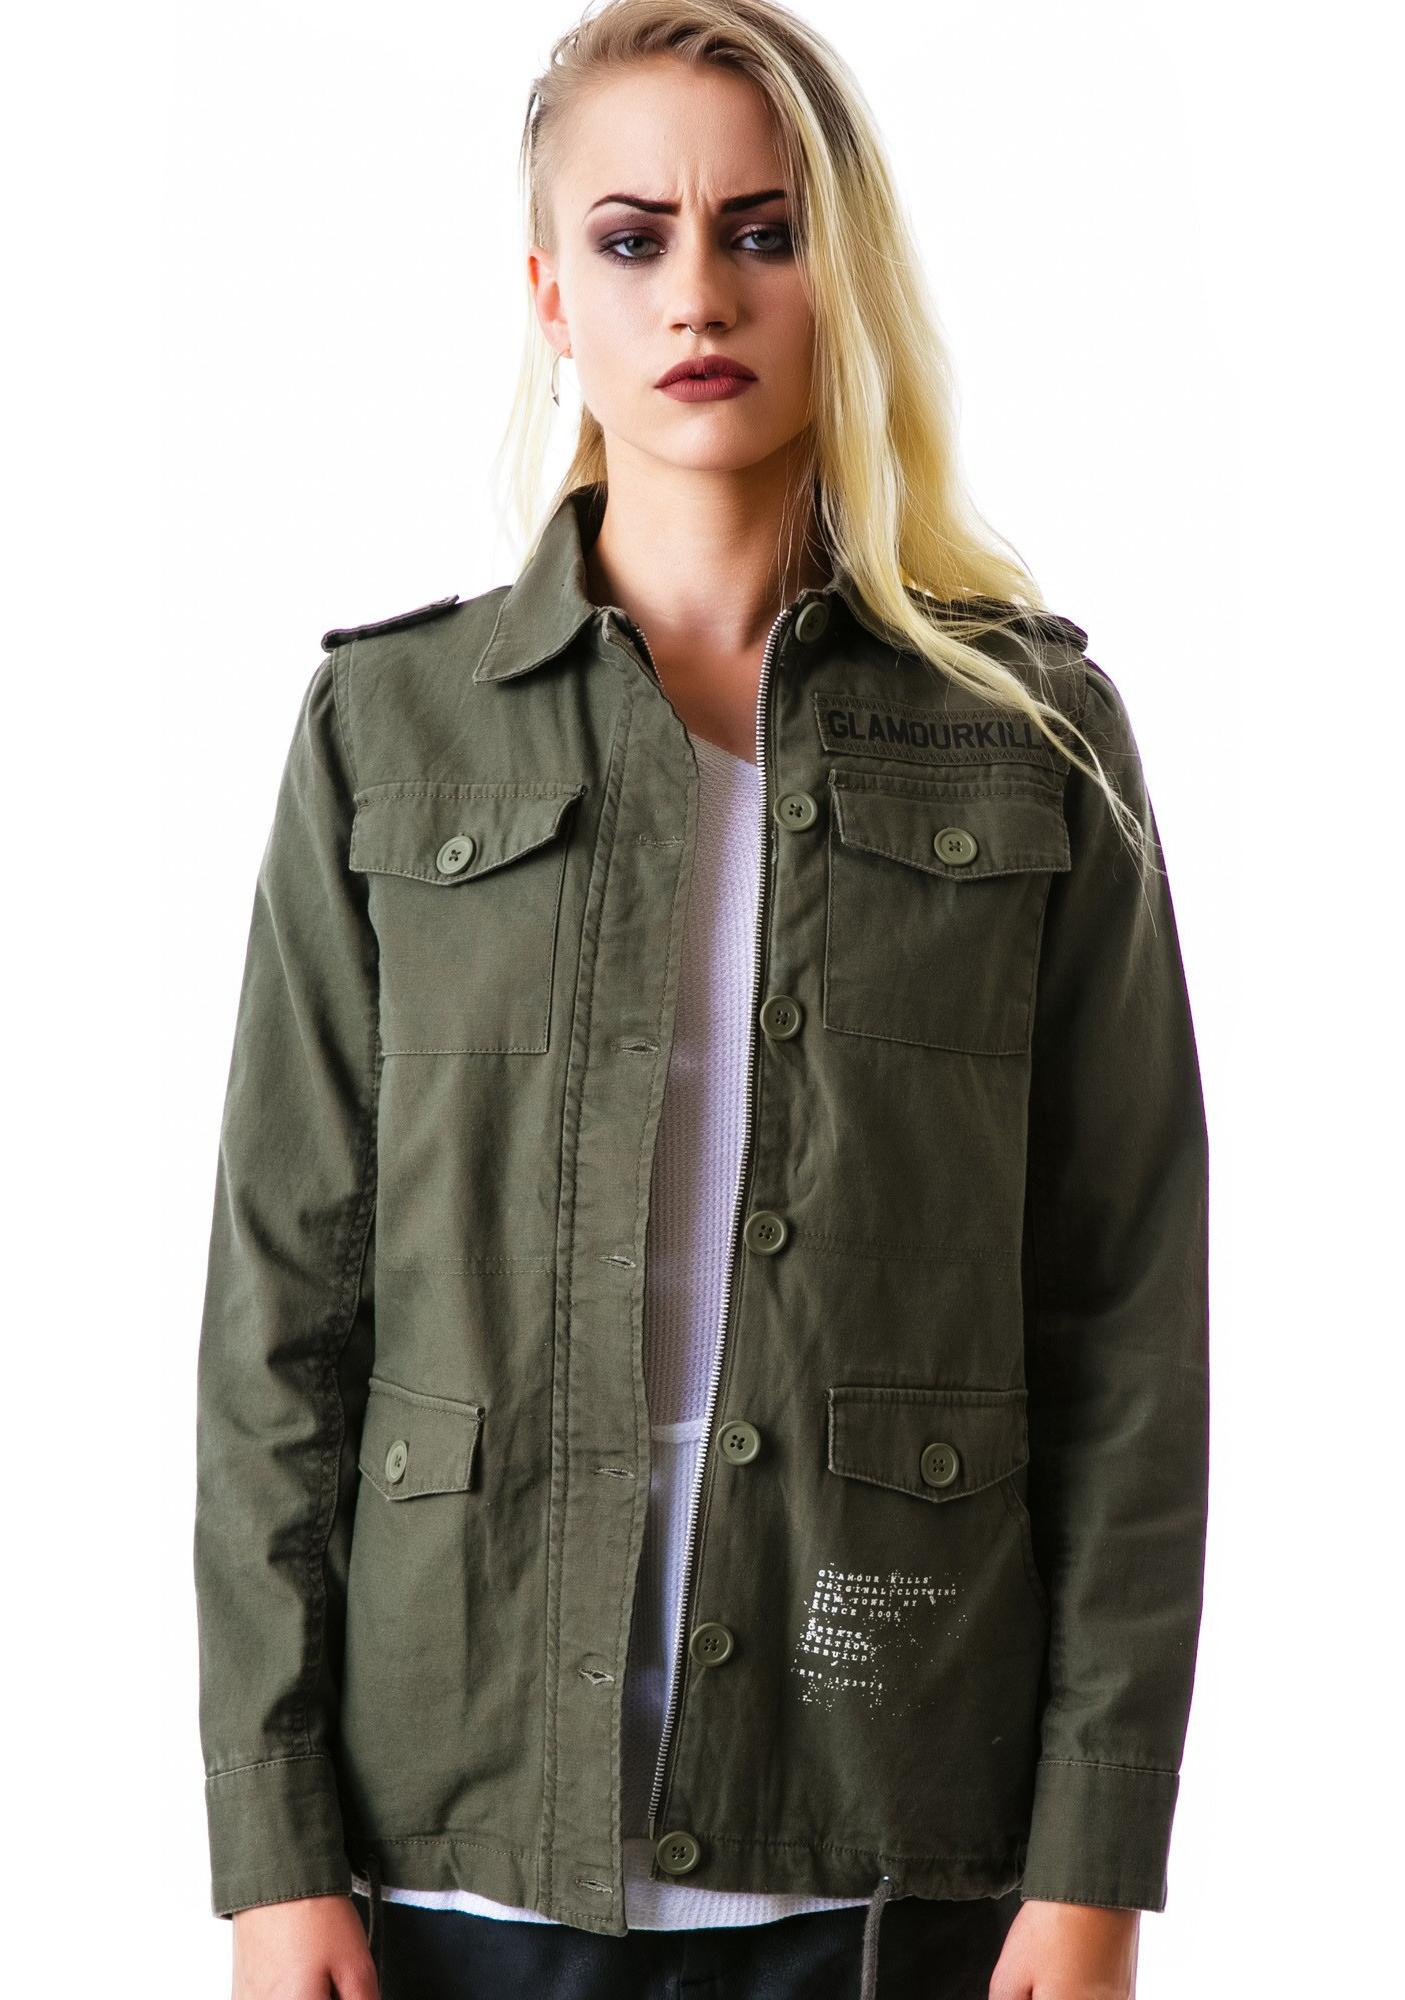 Glamour Kills Stand Attention Surplus Jacket